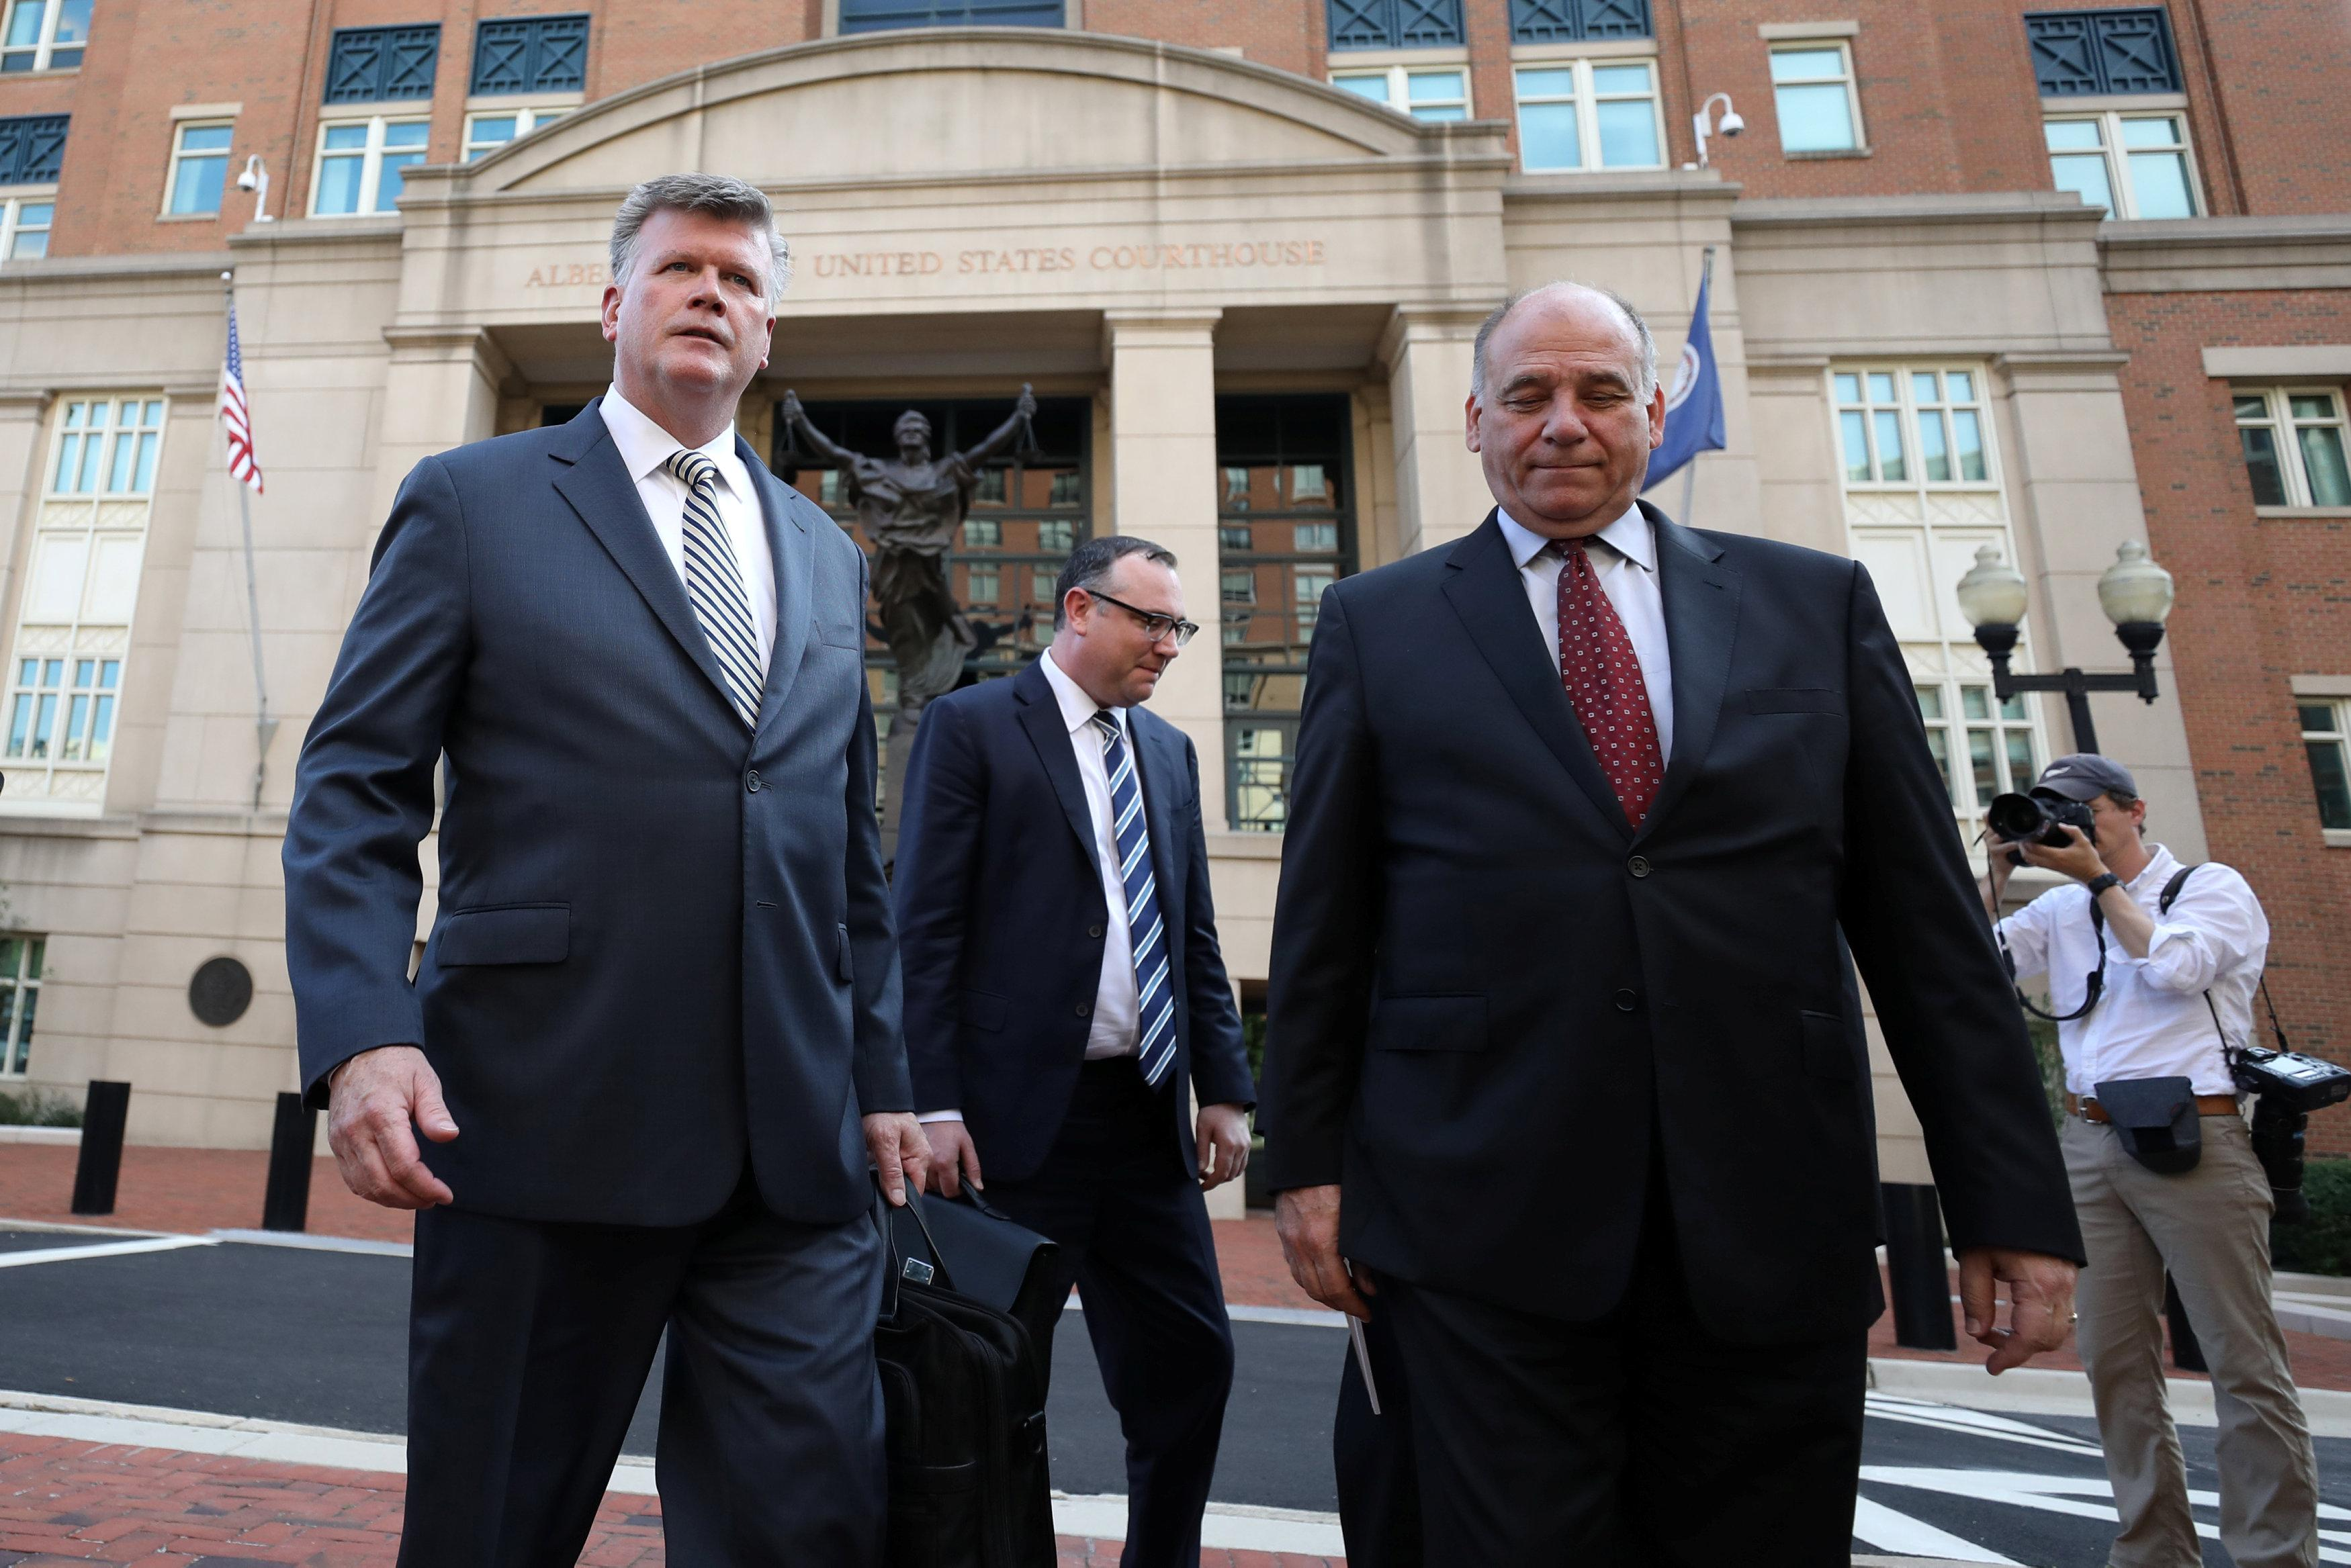 Jury ends first day of deliberations in ex-Trump aide Manafort's trial